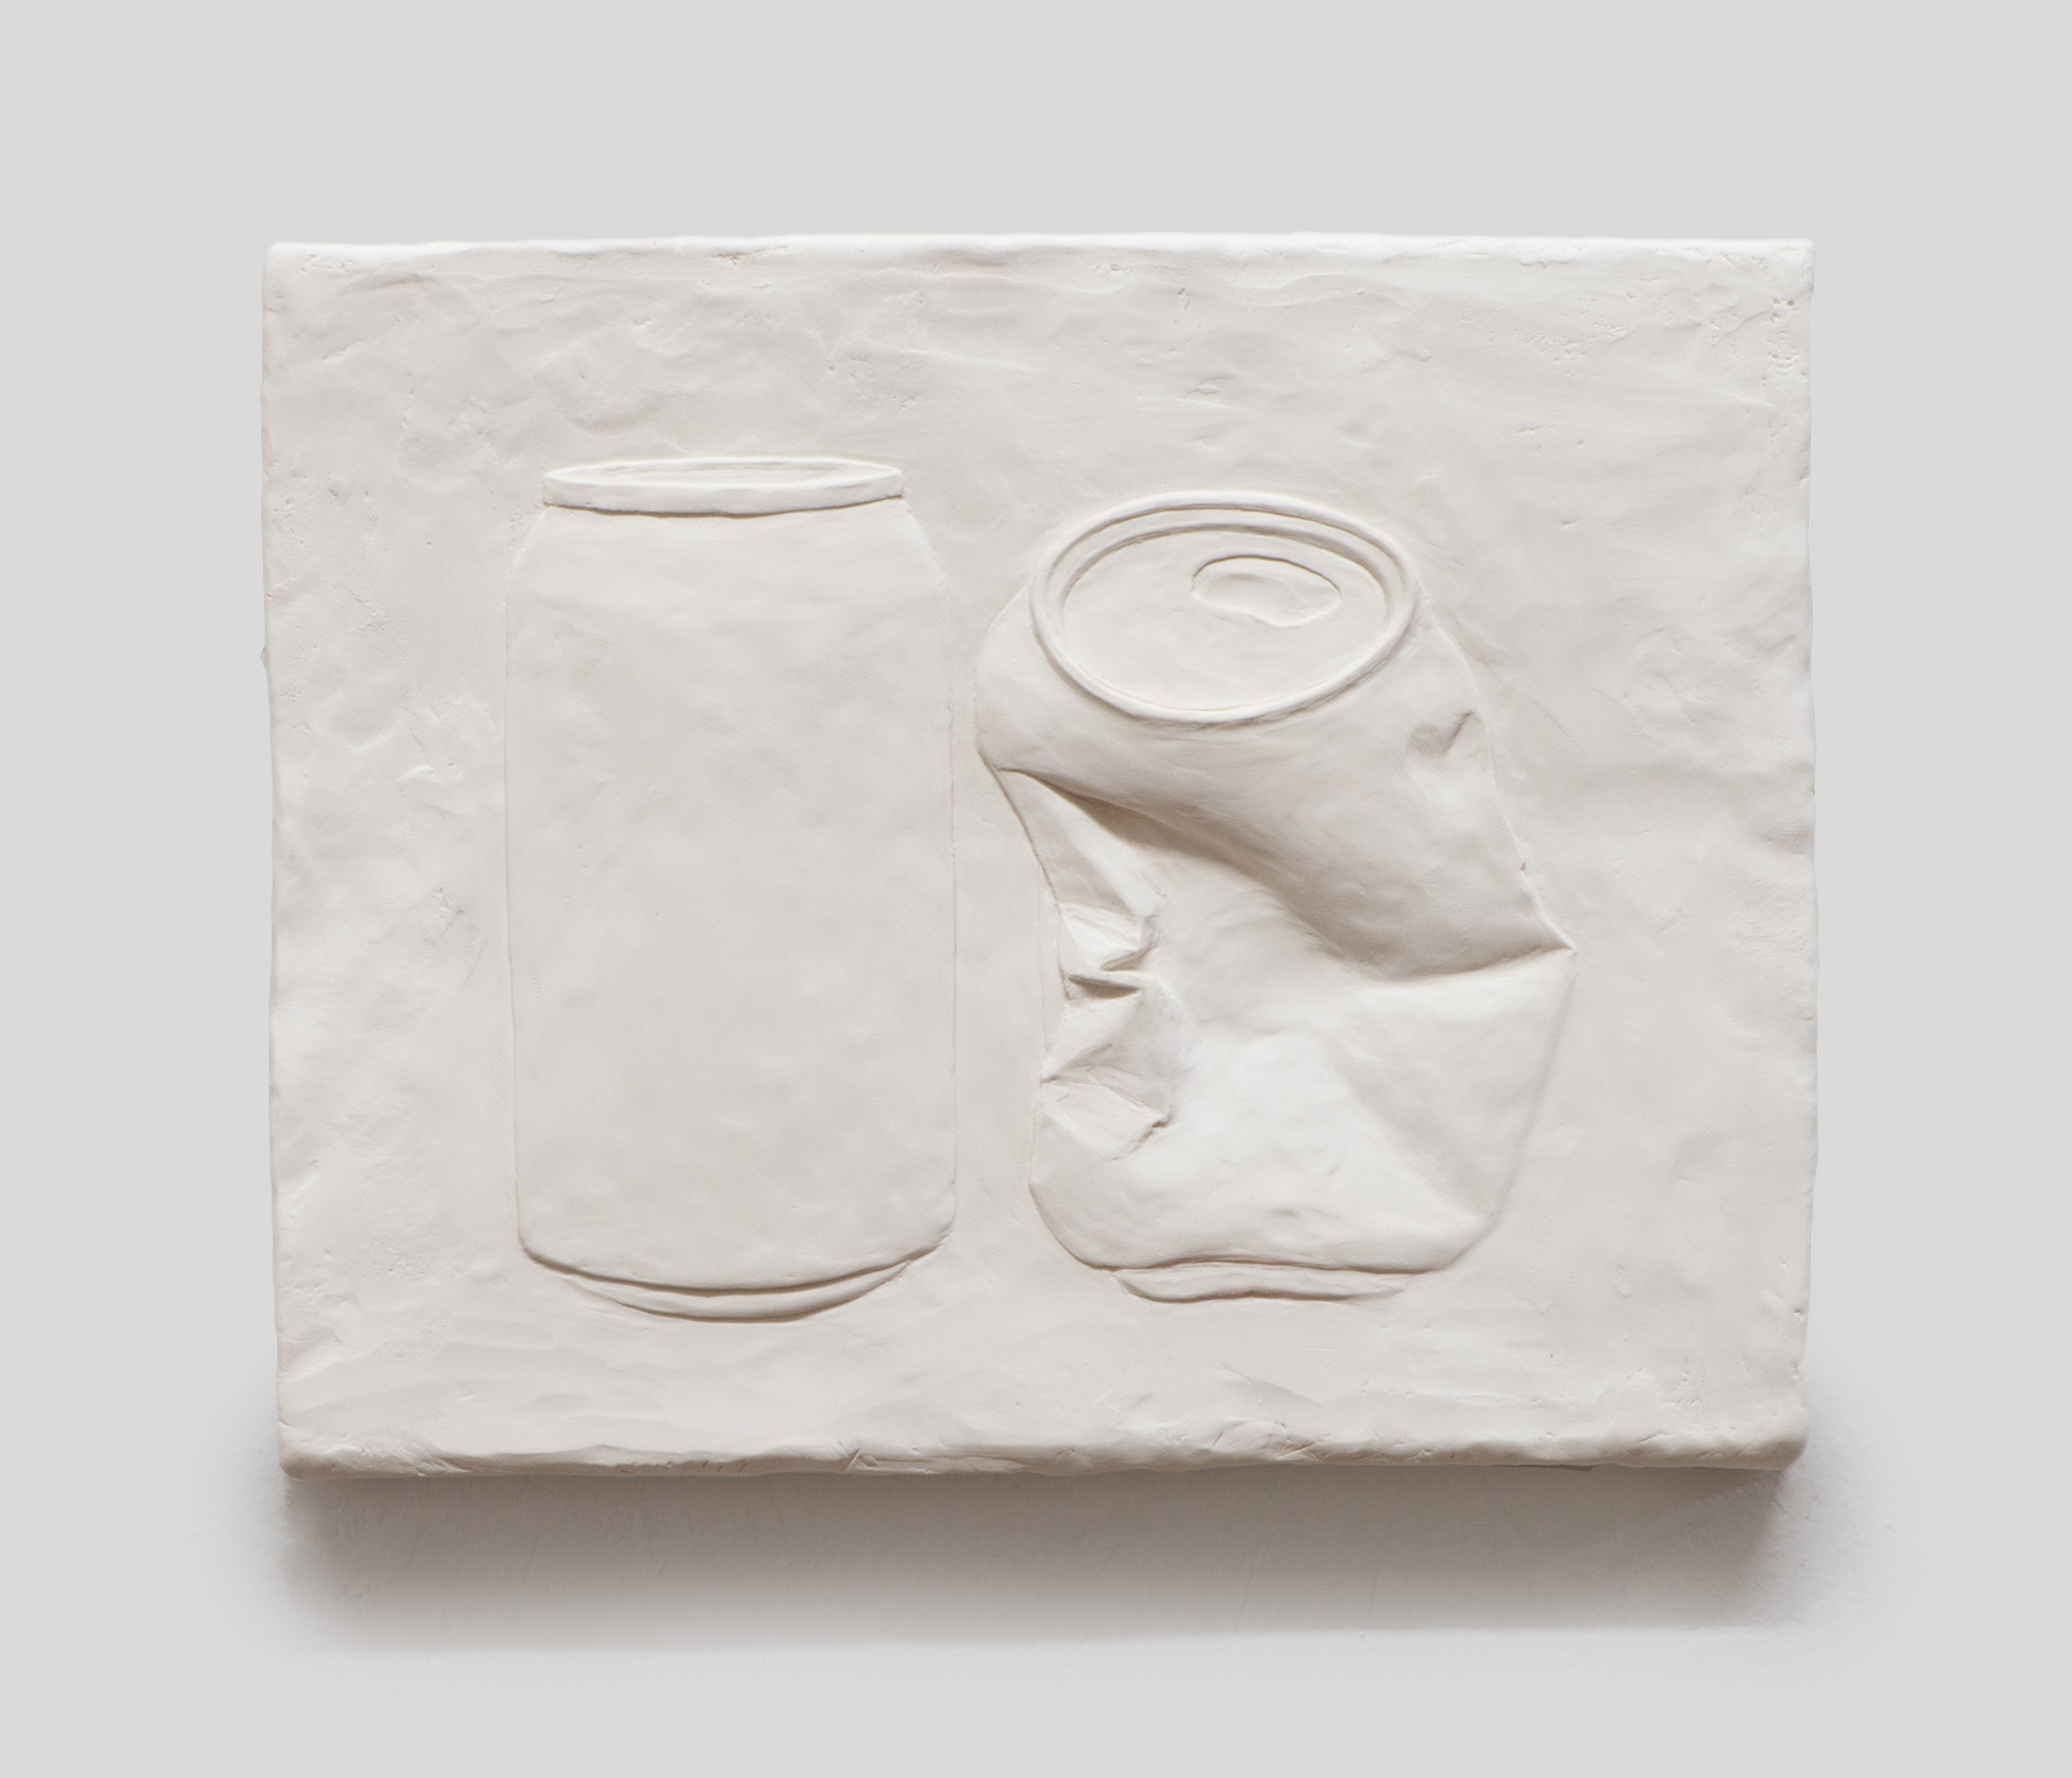 Crushed , 2015 Gypsum cement, fiberglass cloth, and wood 8 x 10 x 1 inches